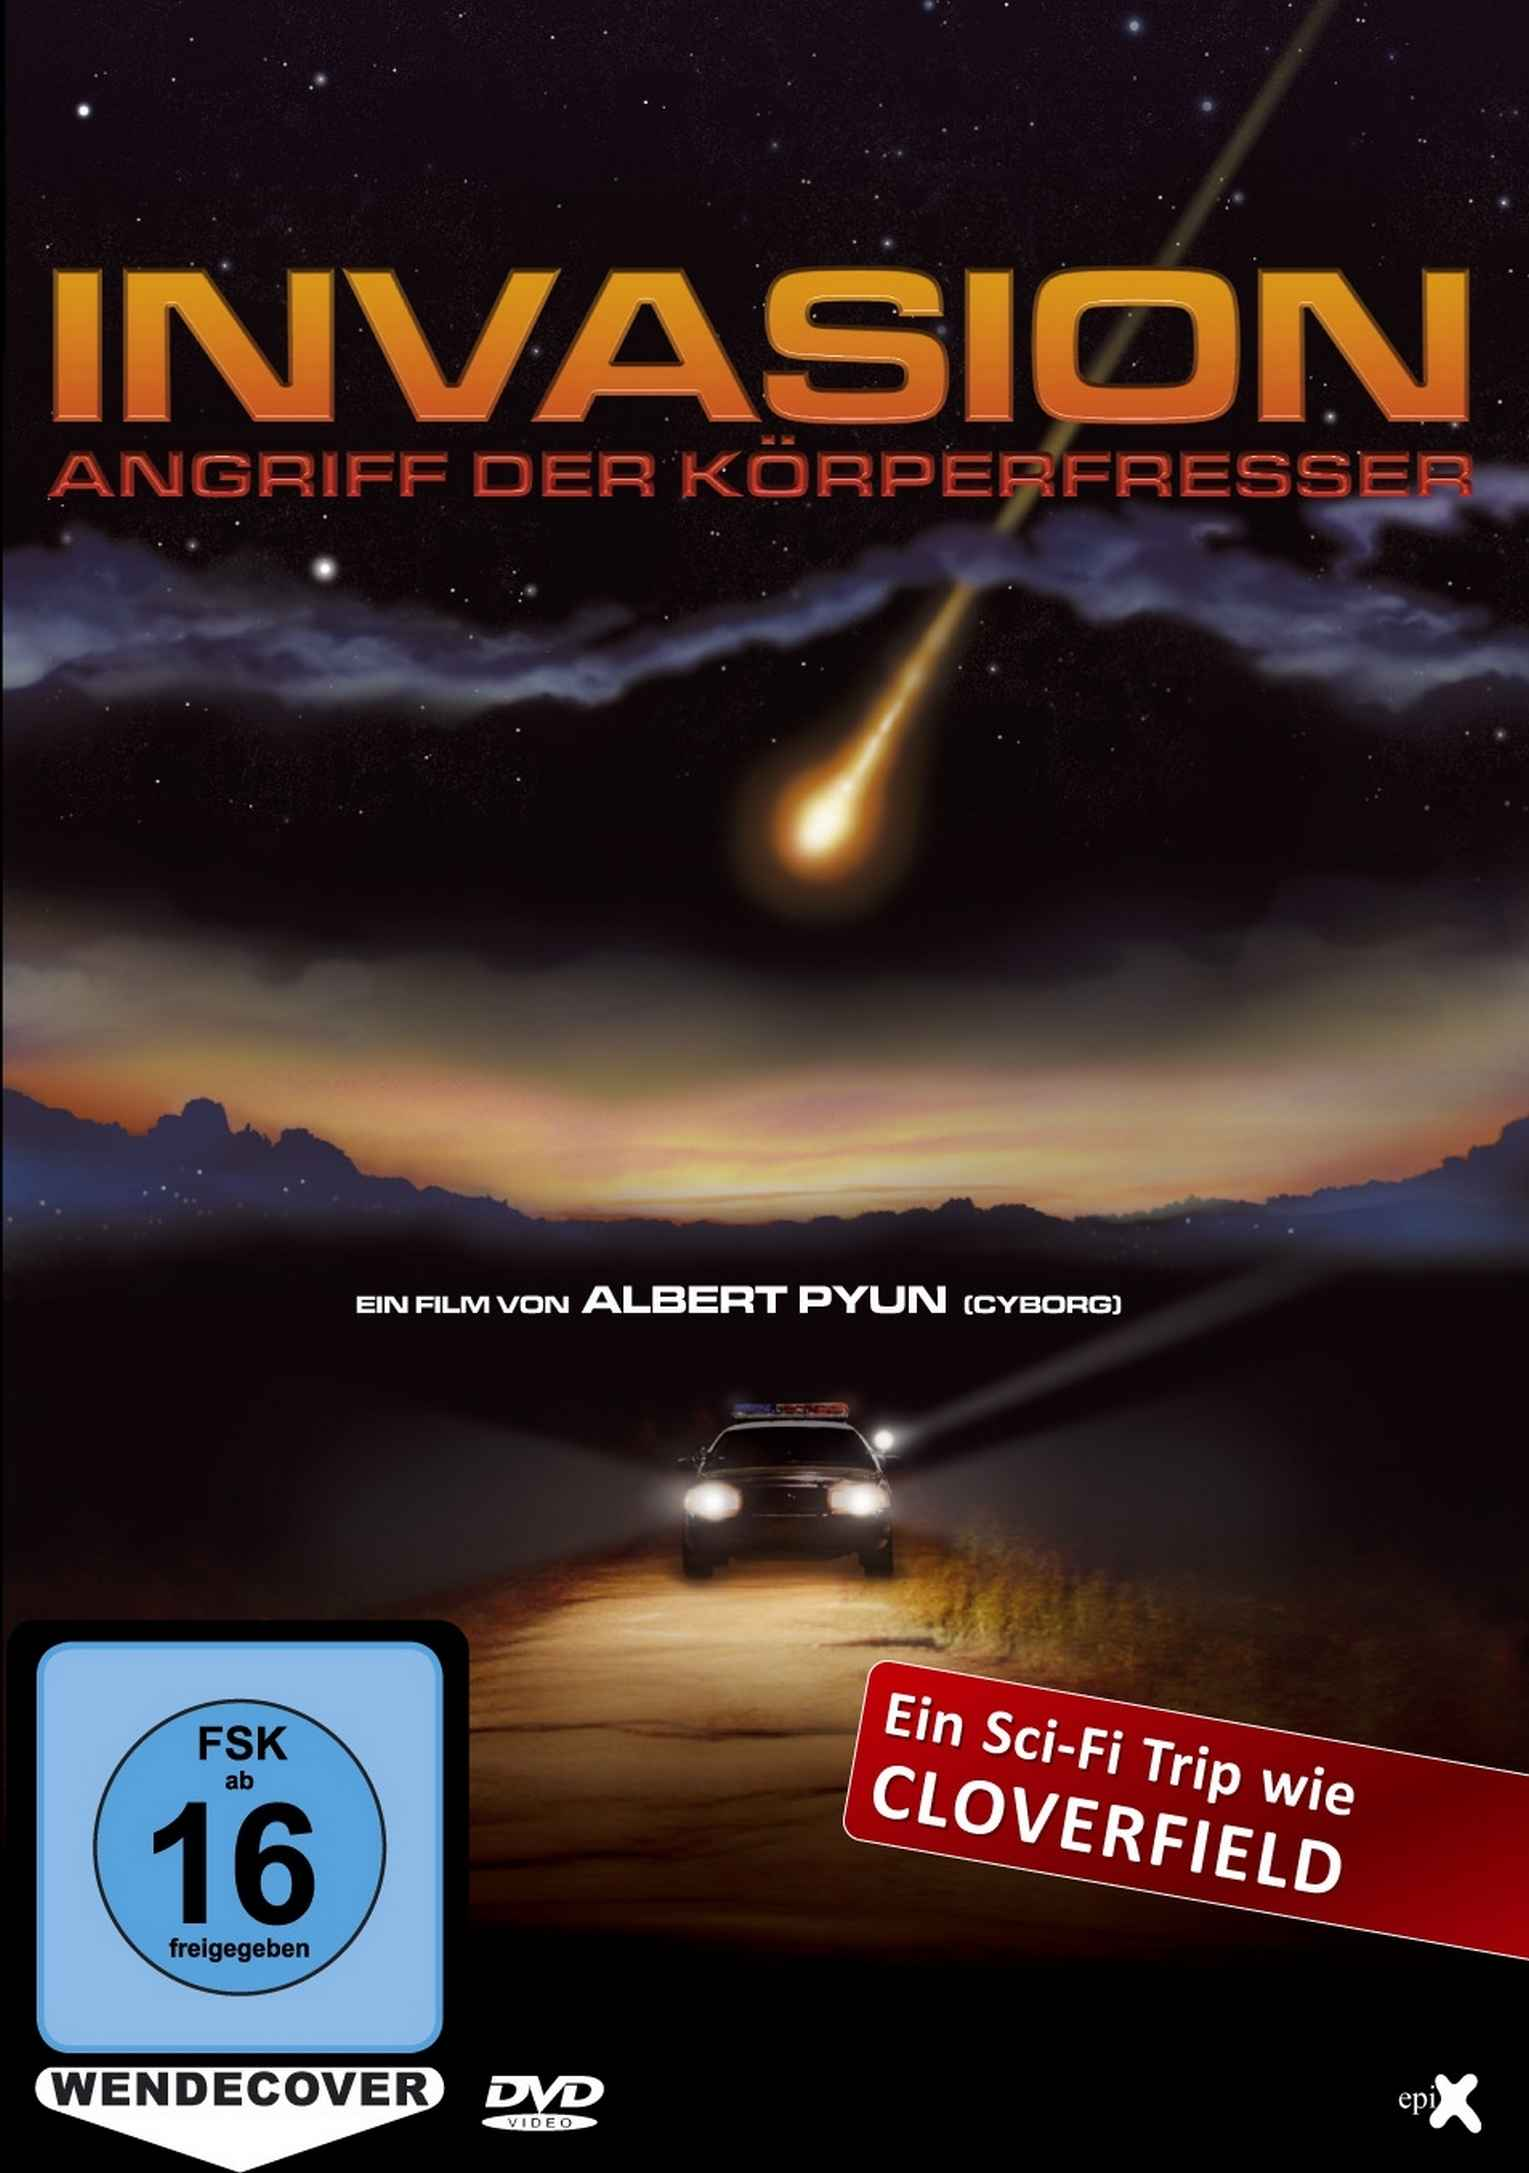 INVASION Front FINAL